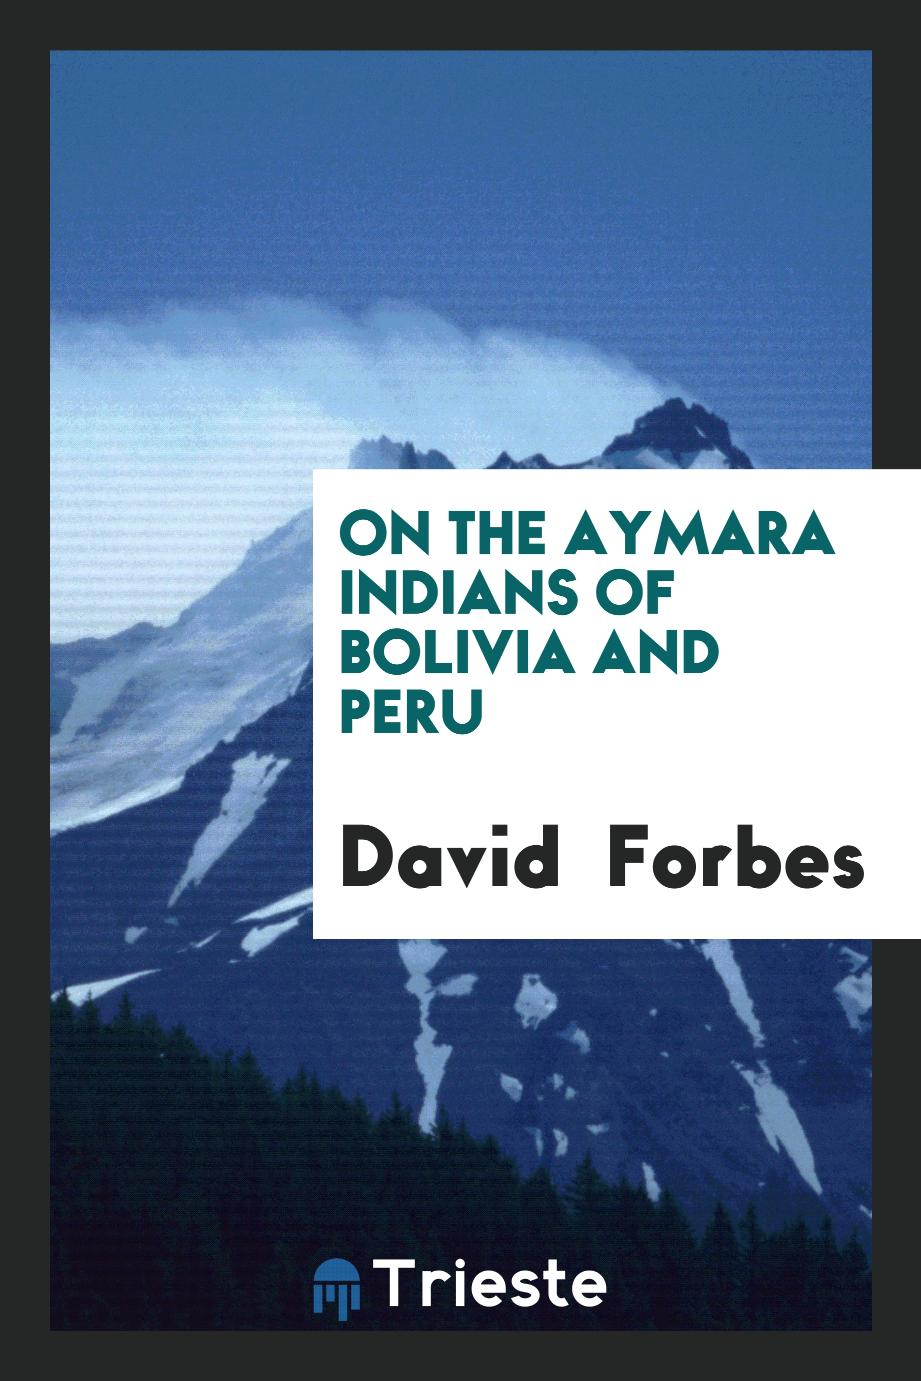 On the Aymara Indians of Bolivia and Peru